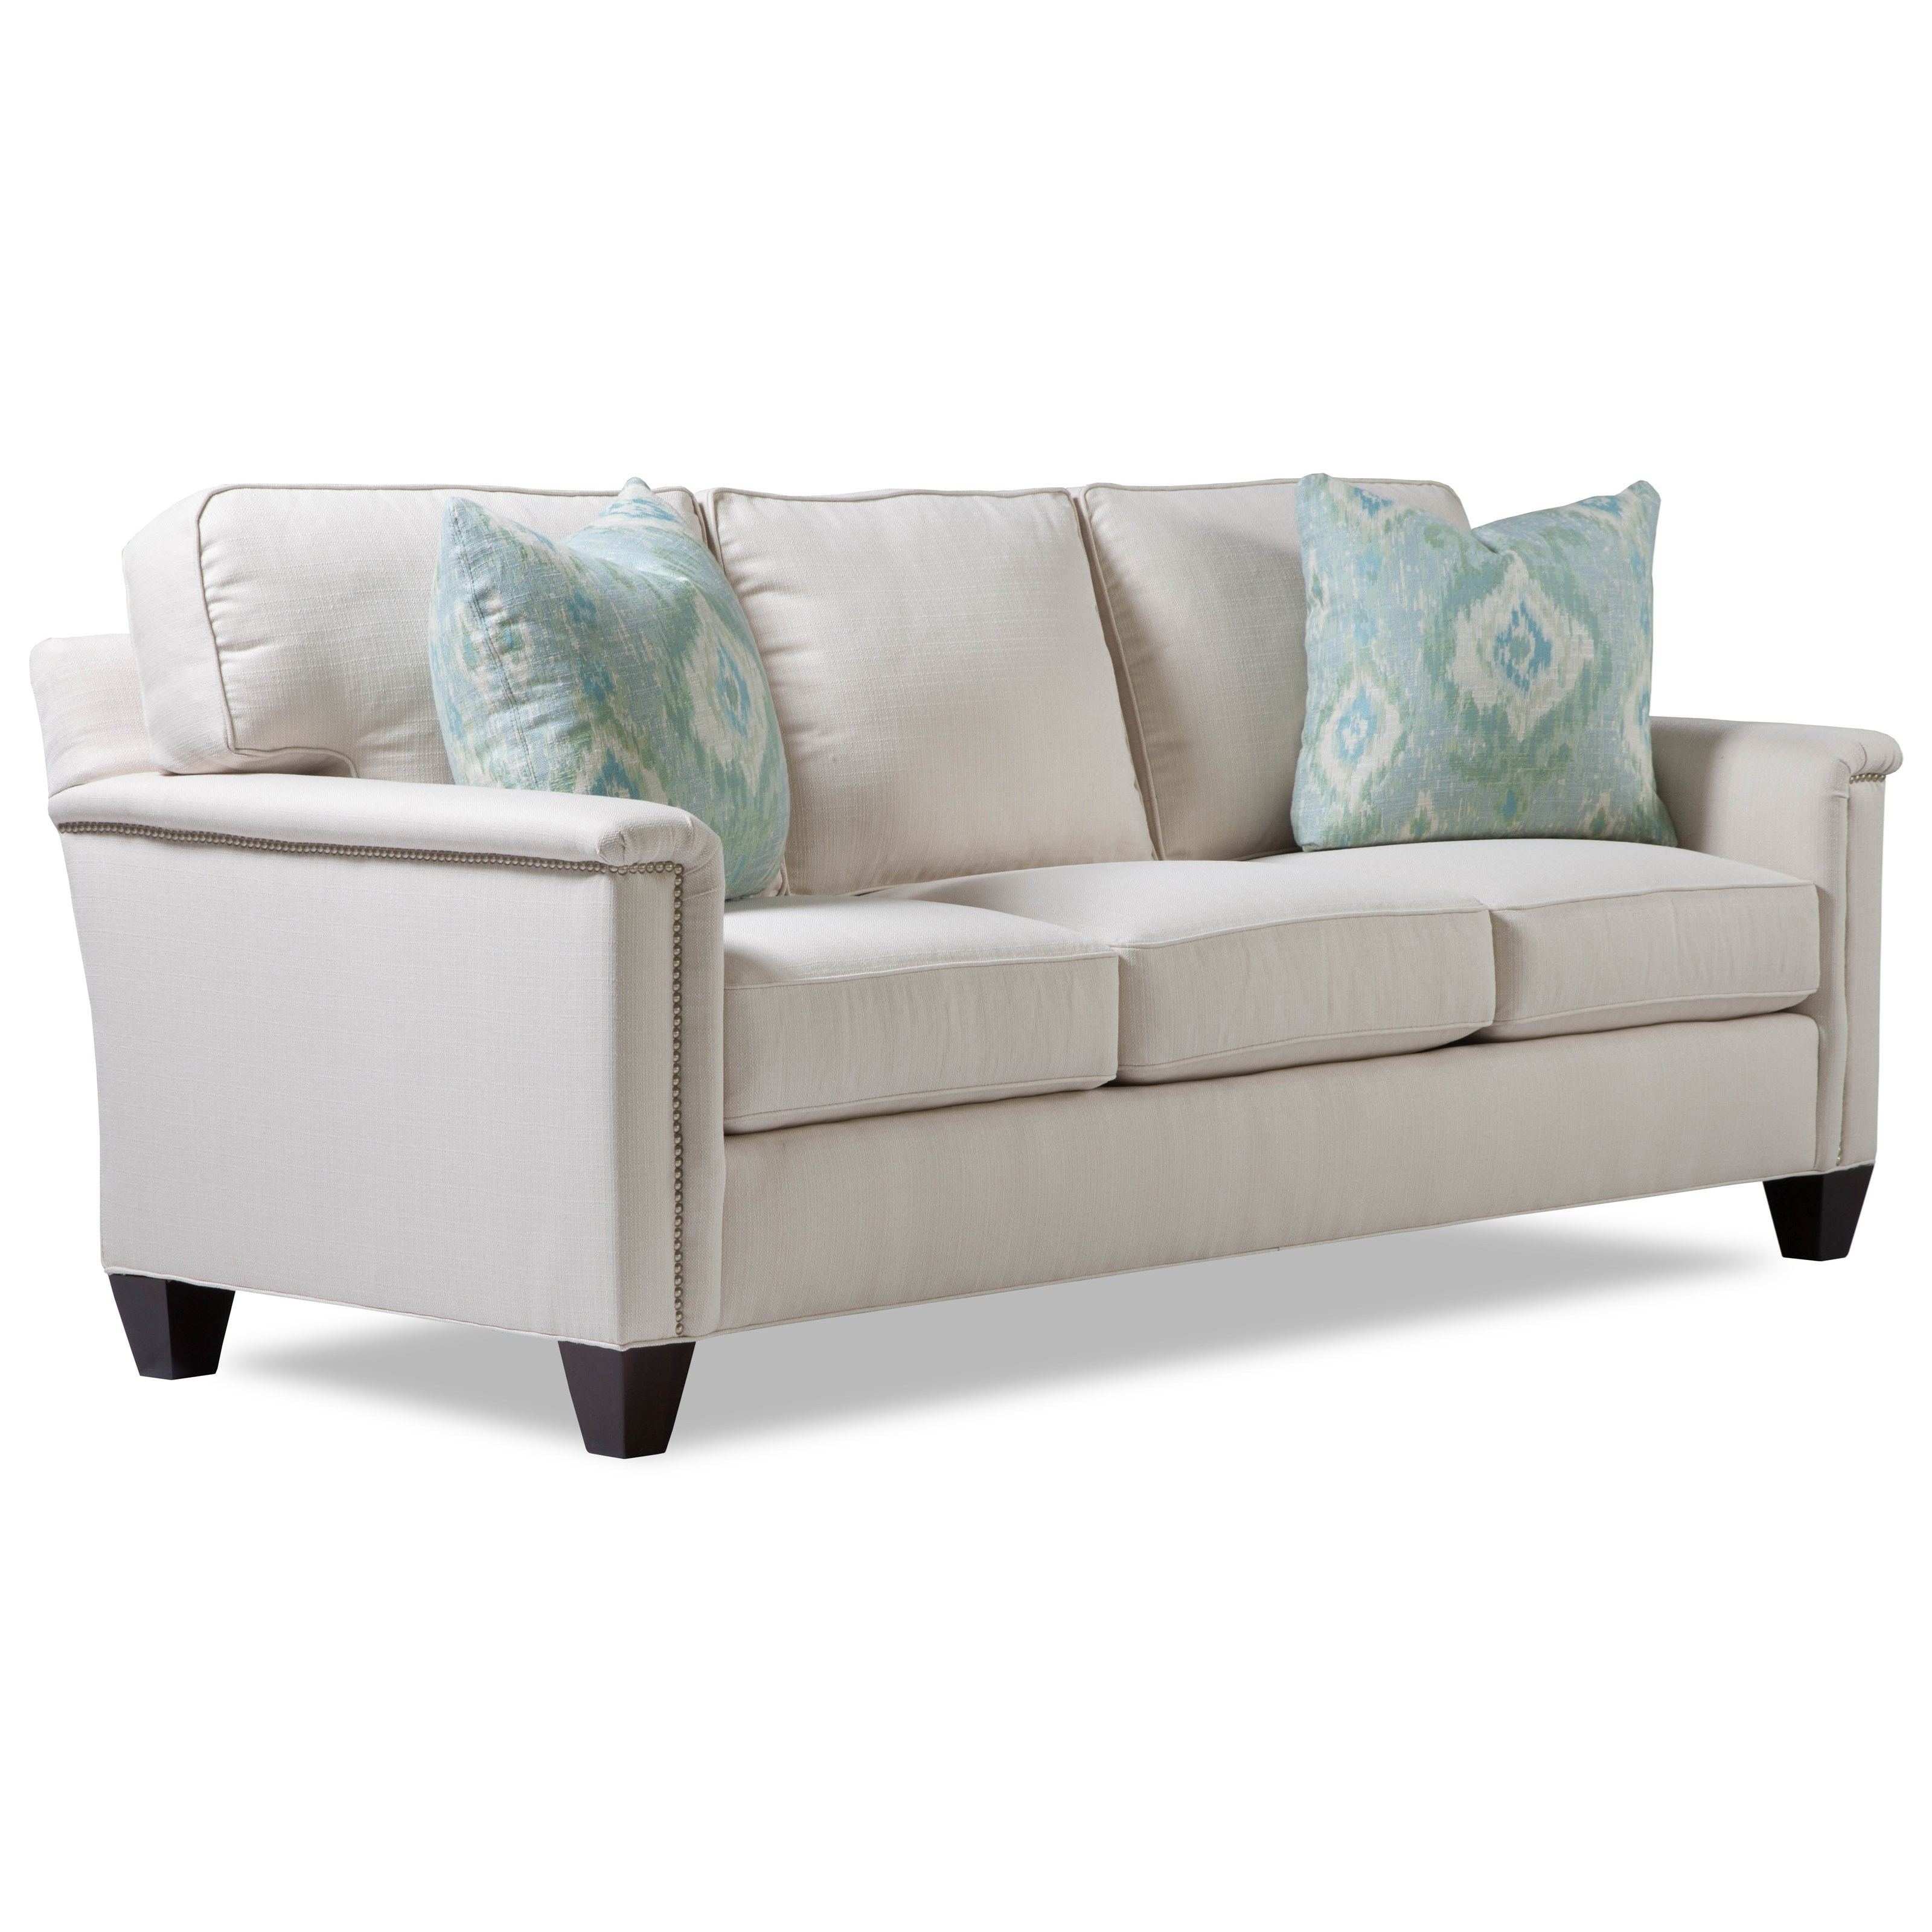 Huntington House 2042 2042 20 Customizable Three Seat Sofa